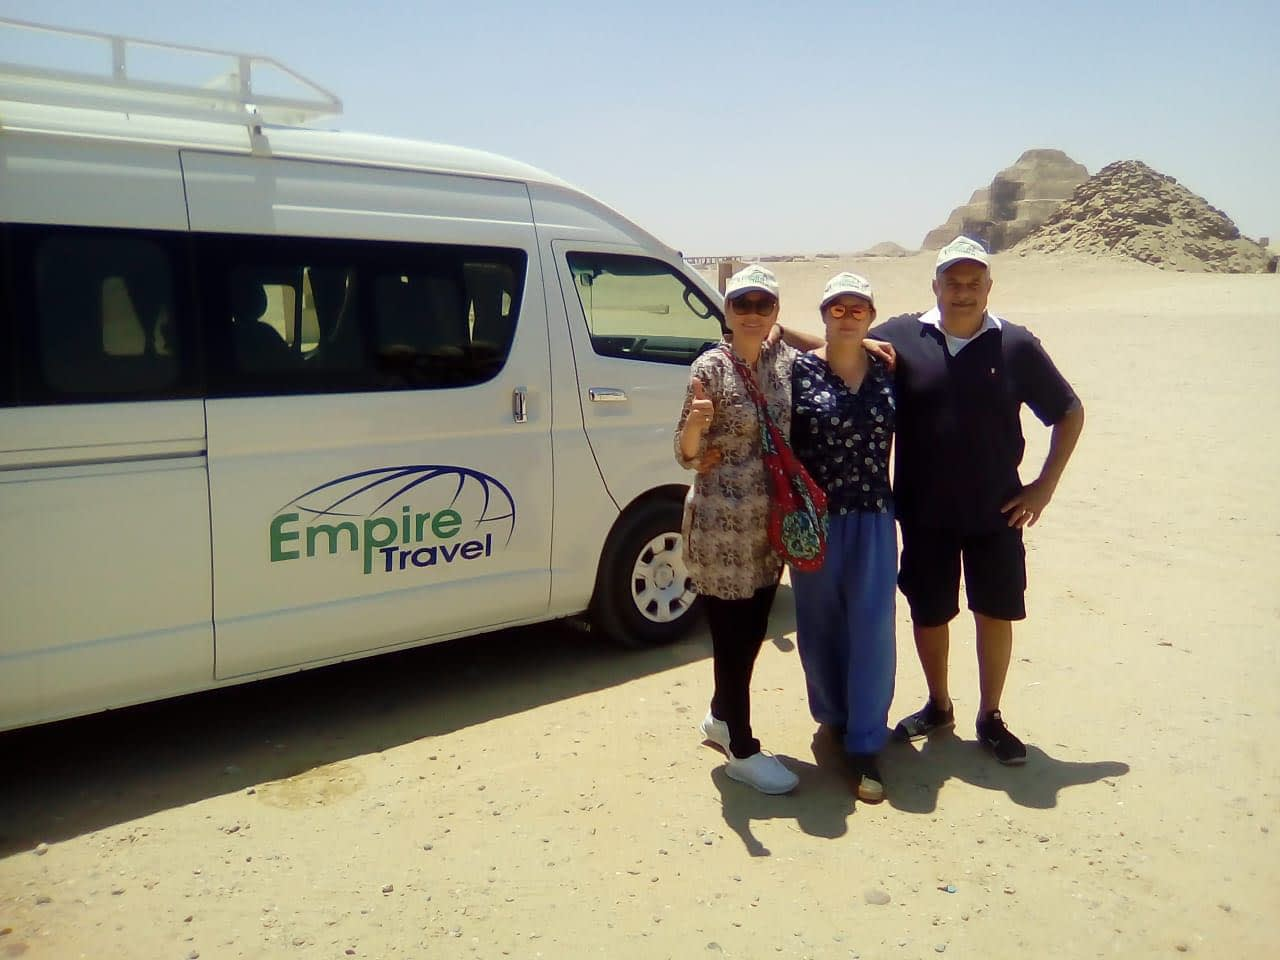 Travellers Photo with Empire Travel Bus